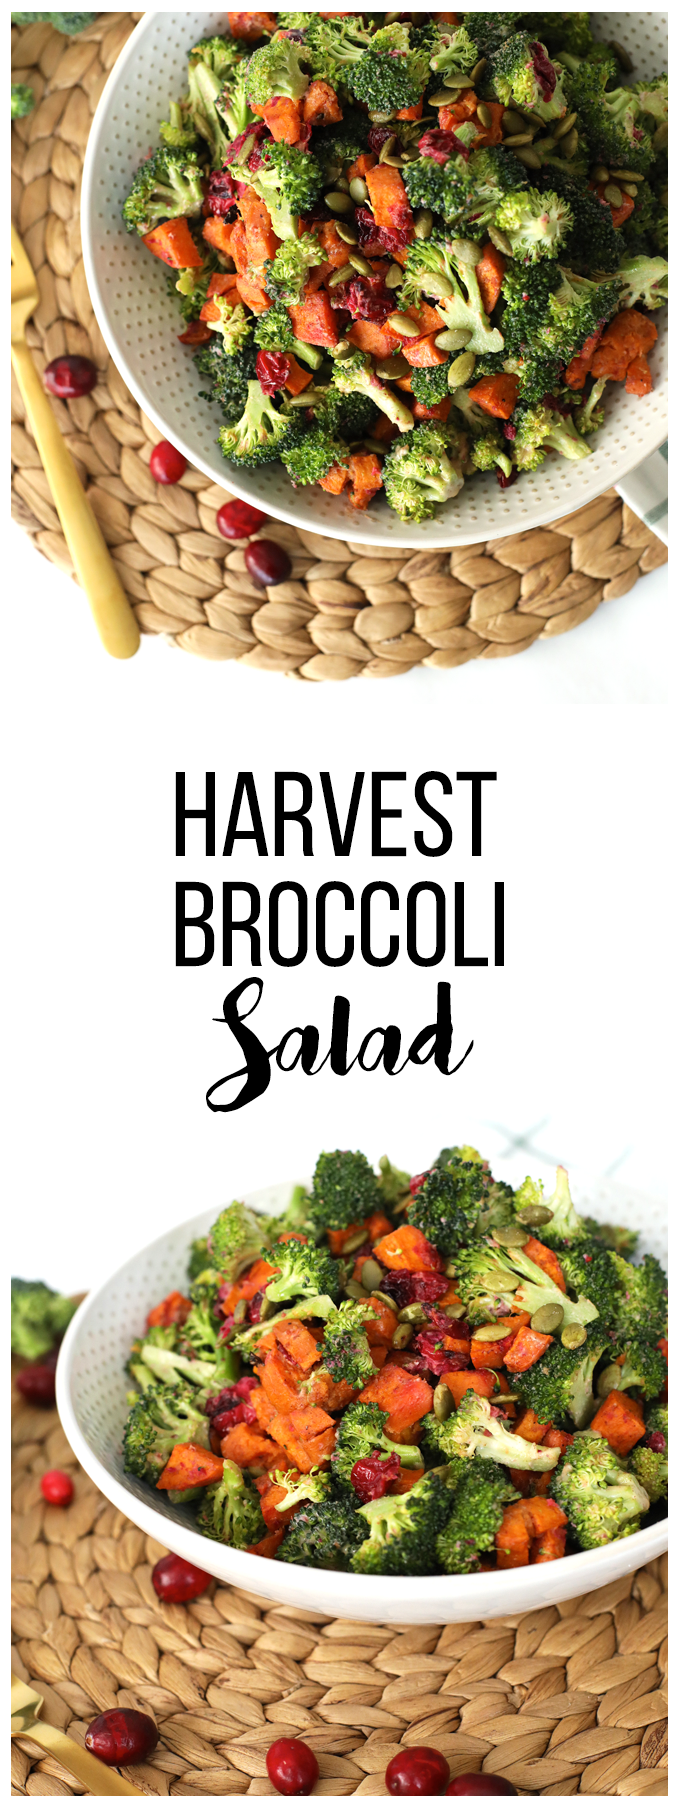 This Harvest Broccoli Salad is perfect for the holiday season! It is also a great thanksgiving side dish!